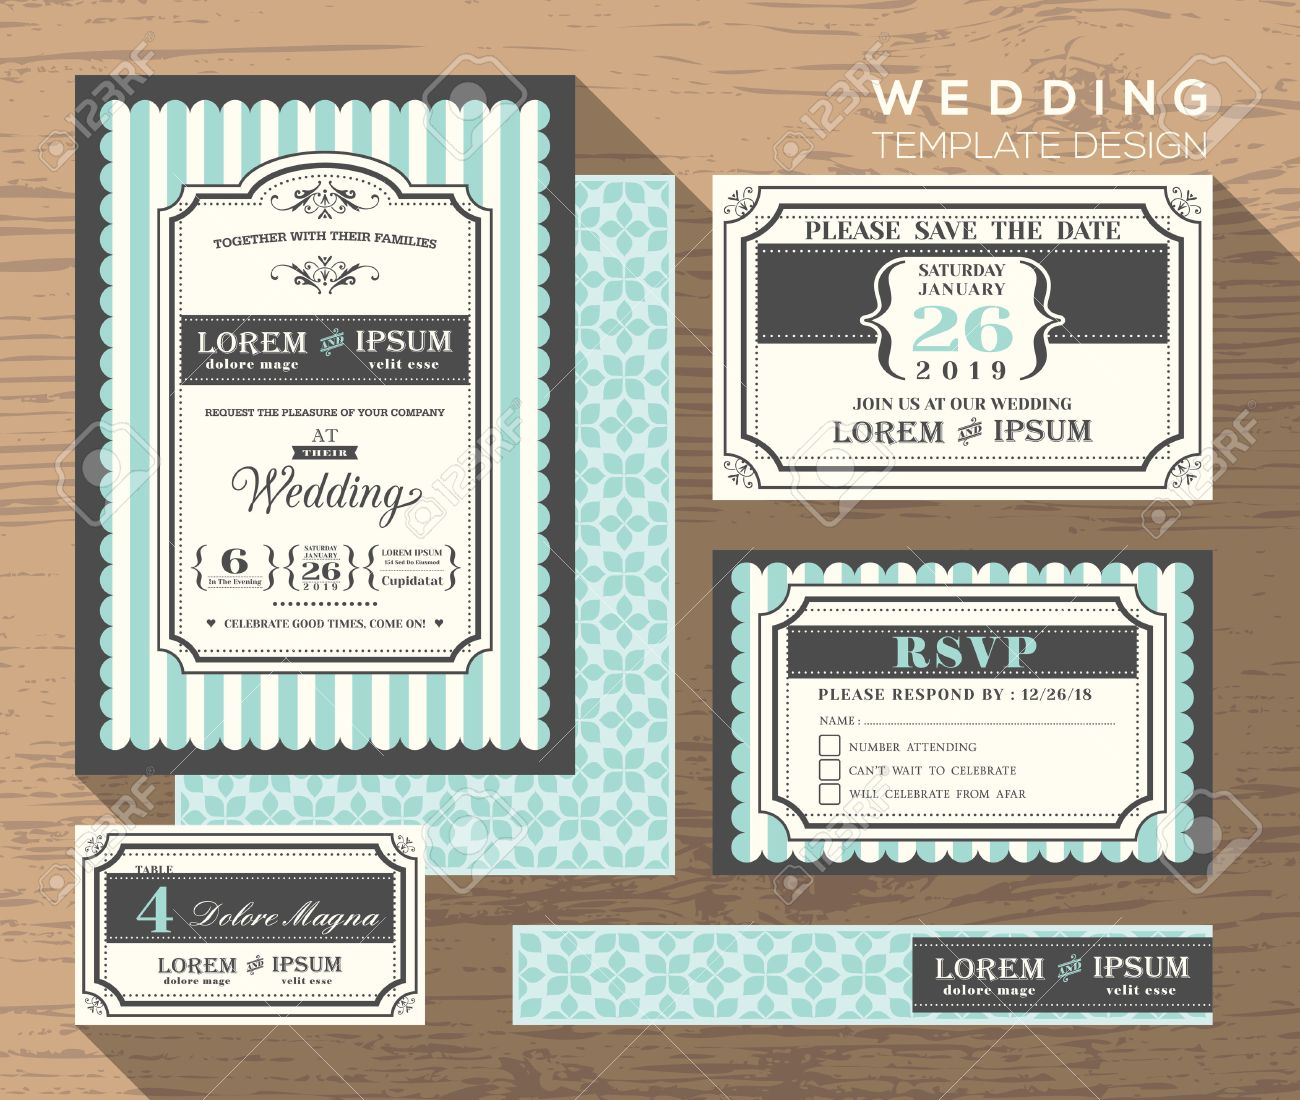 35428669 wedding invitation set design Template place card response card save the date card Stock Vector wedding invitation set design template place card response card,Invitation And Response Card Set